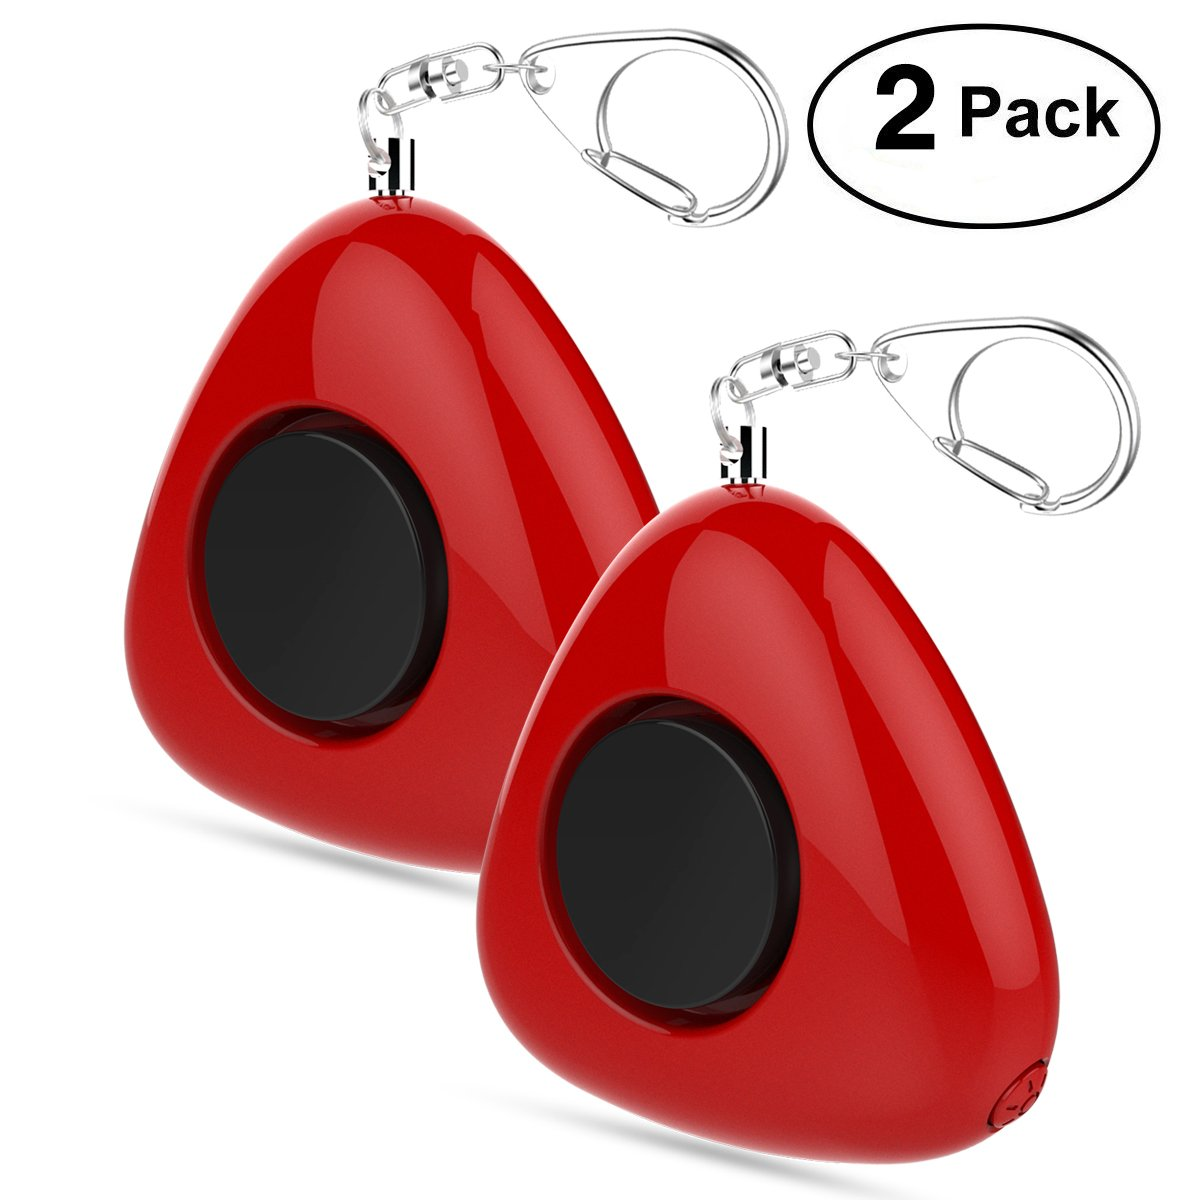 UTOPER Personal Alarm Keychain 2 Pack Self-Defense Emergency Sound Weapon Safe Security Siren Alarm with LED Flashlight for Women Children -Red